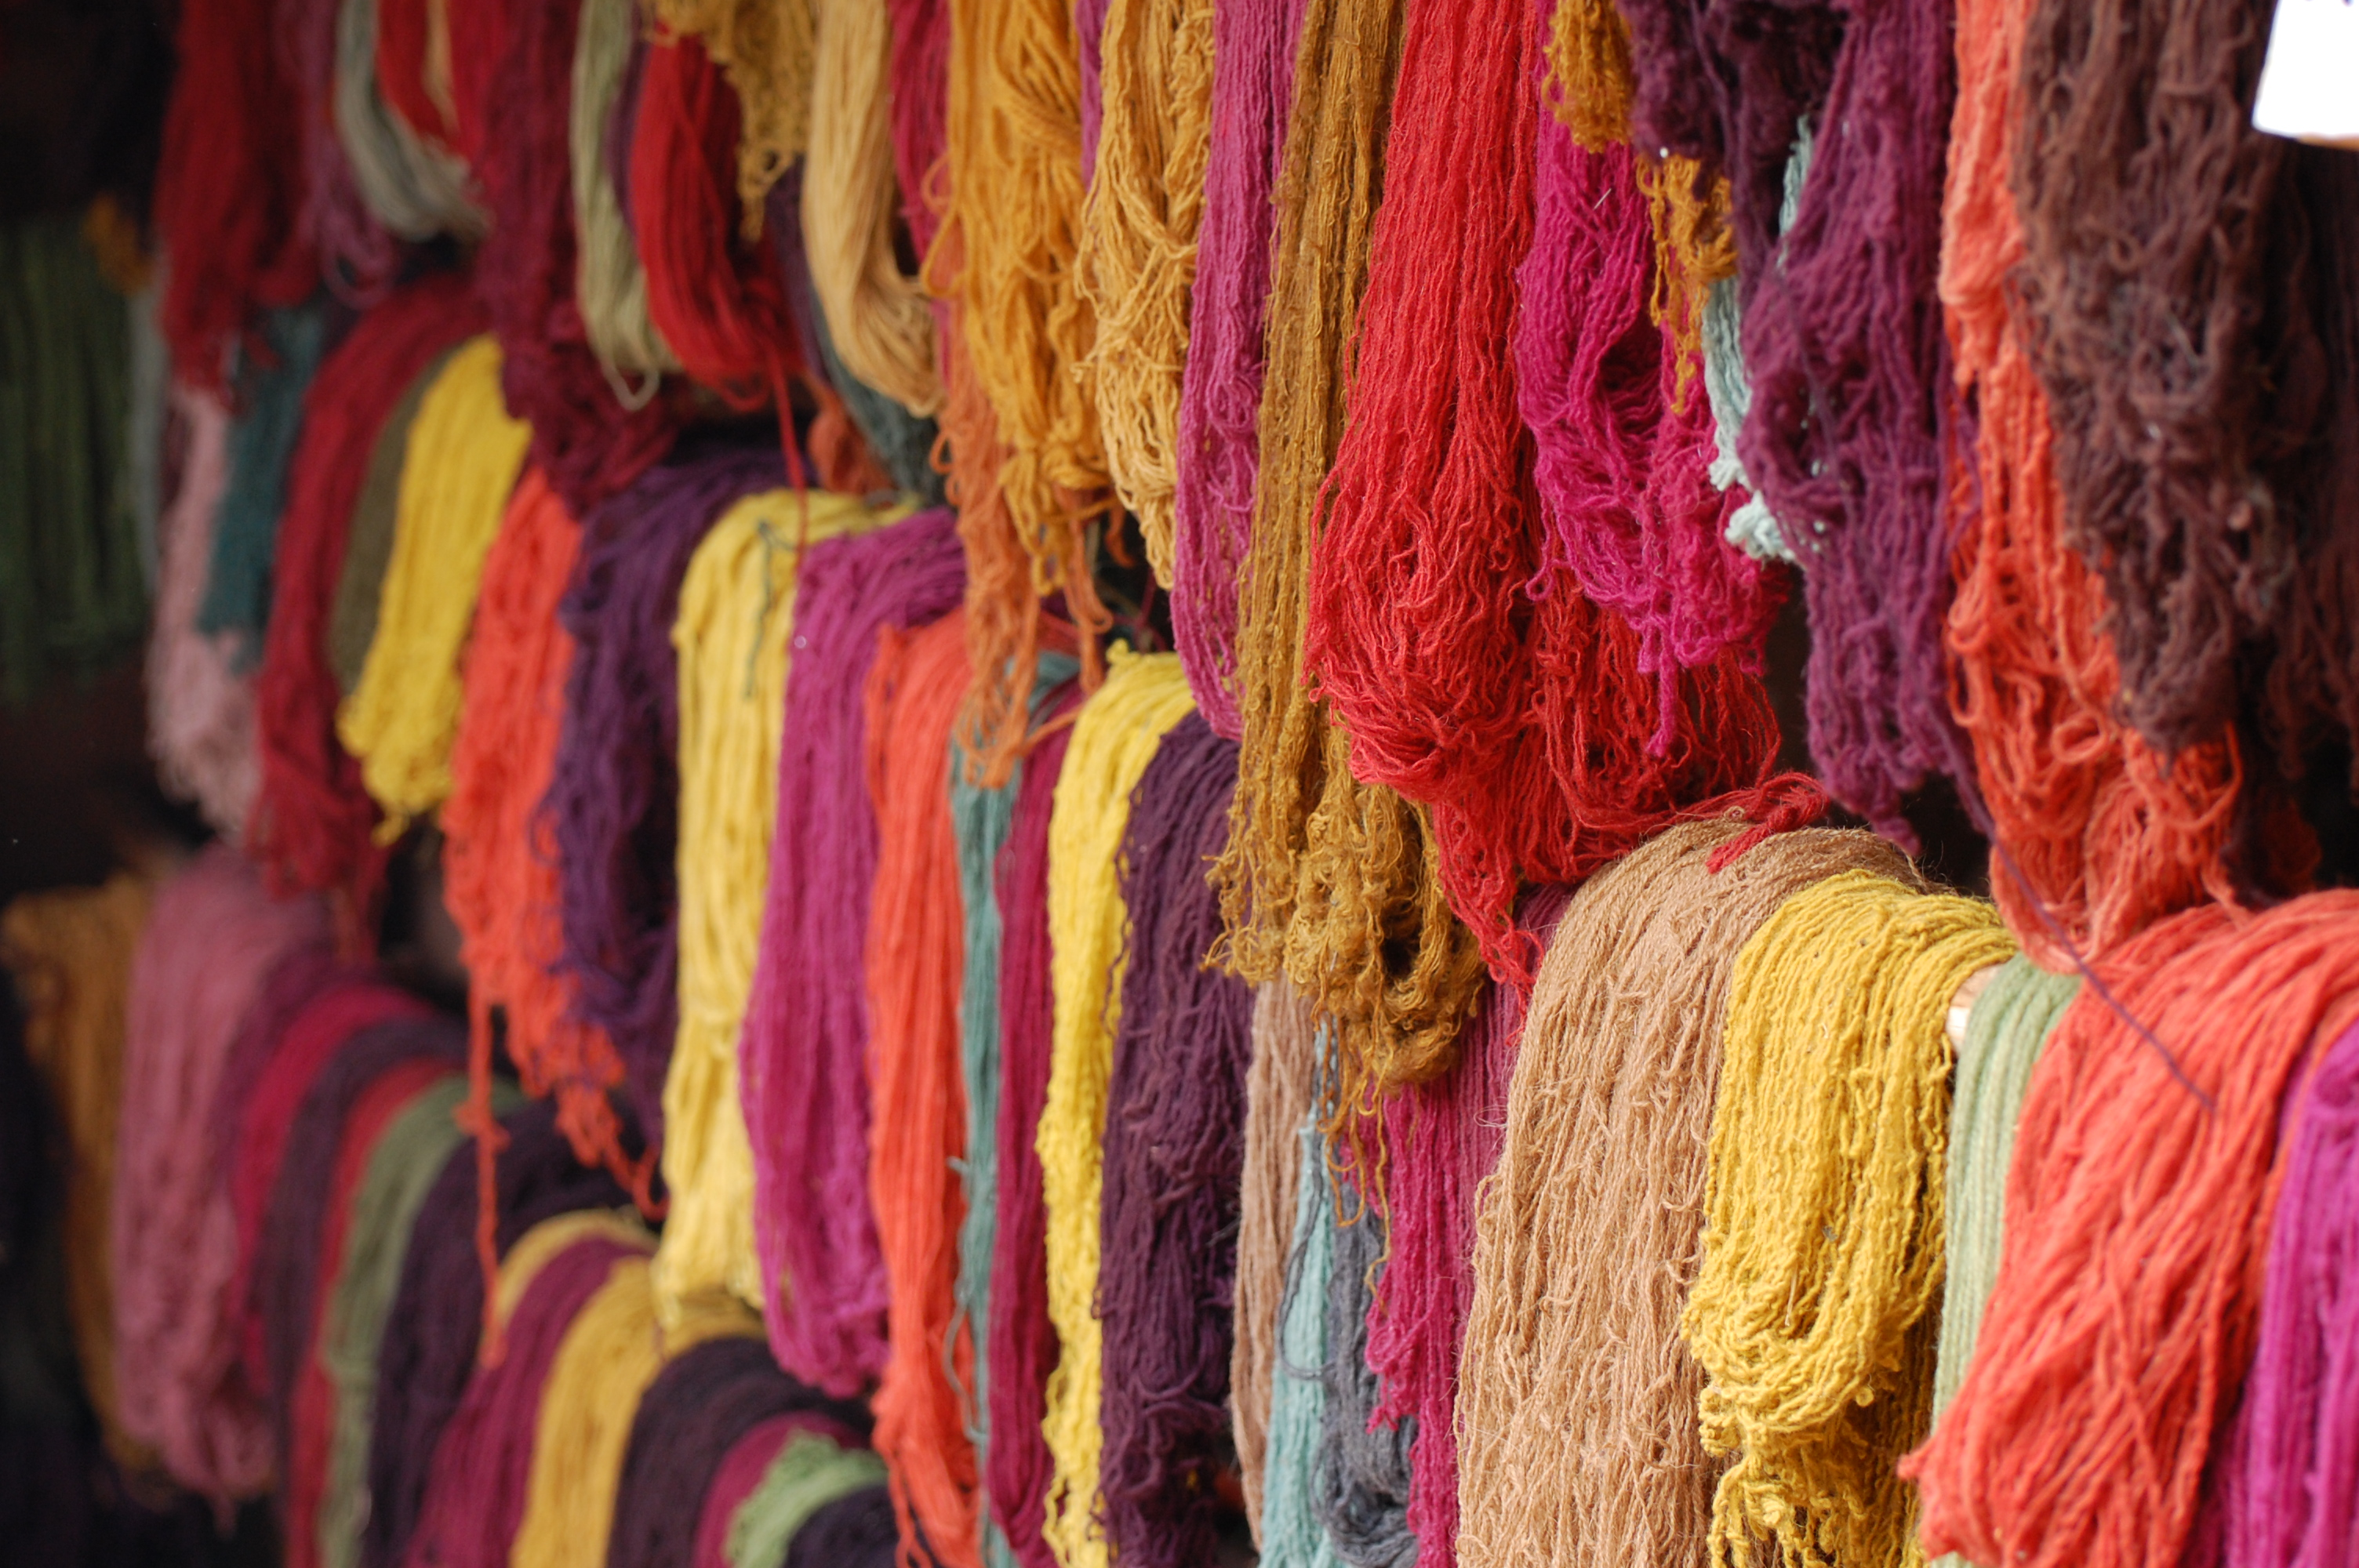 Alpaca yarn in a multitude of colors hanging from racks